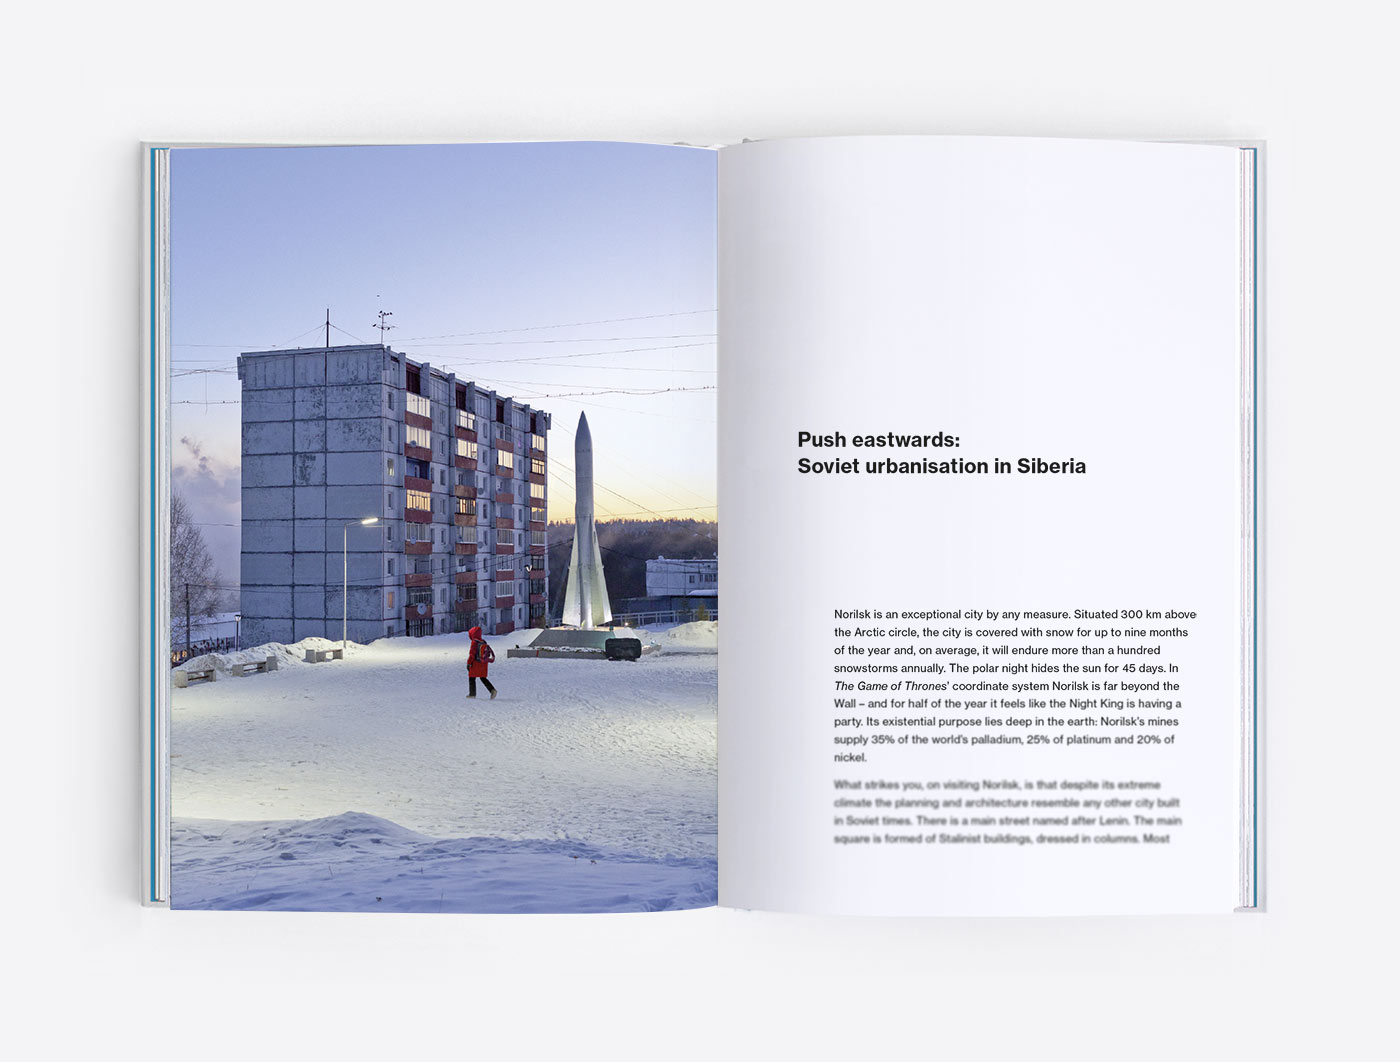 Soviet urbanisation in Siberia. Foreword of the photobook Concrete Siberia